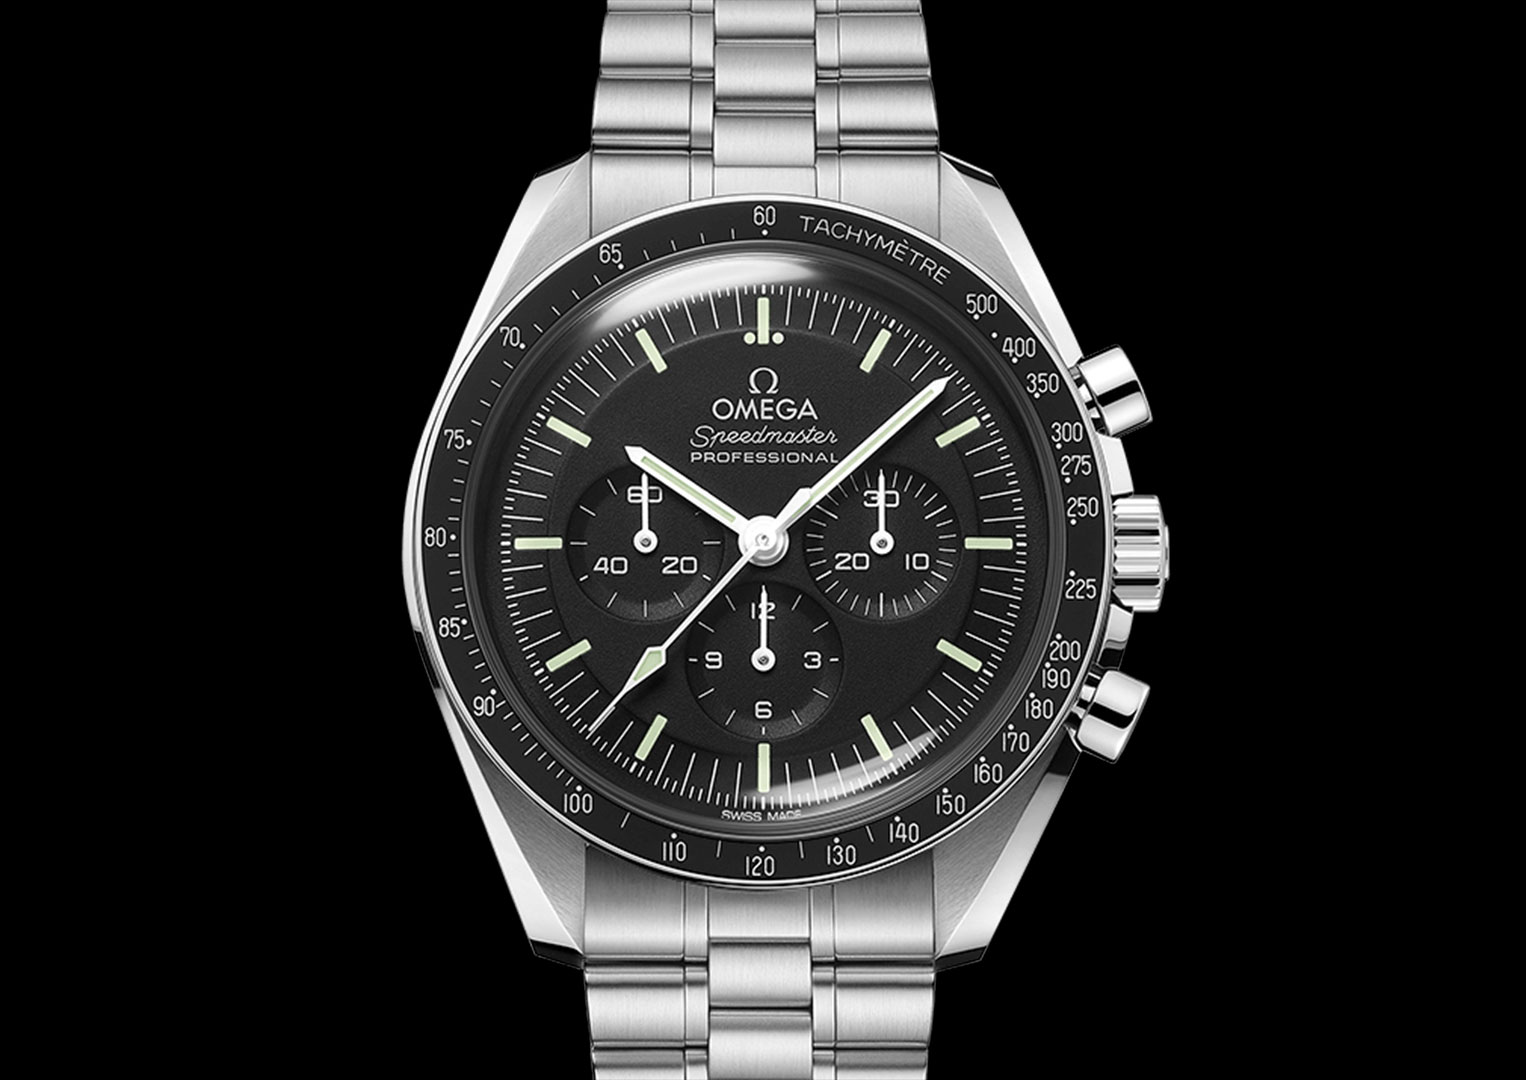 The Omega Speedmaster is still the only watch rated for EVA (extravehicular activities)